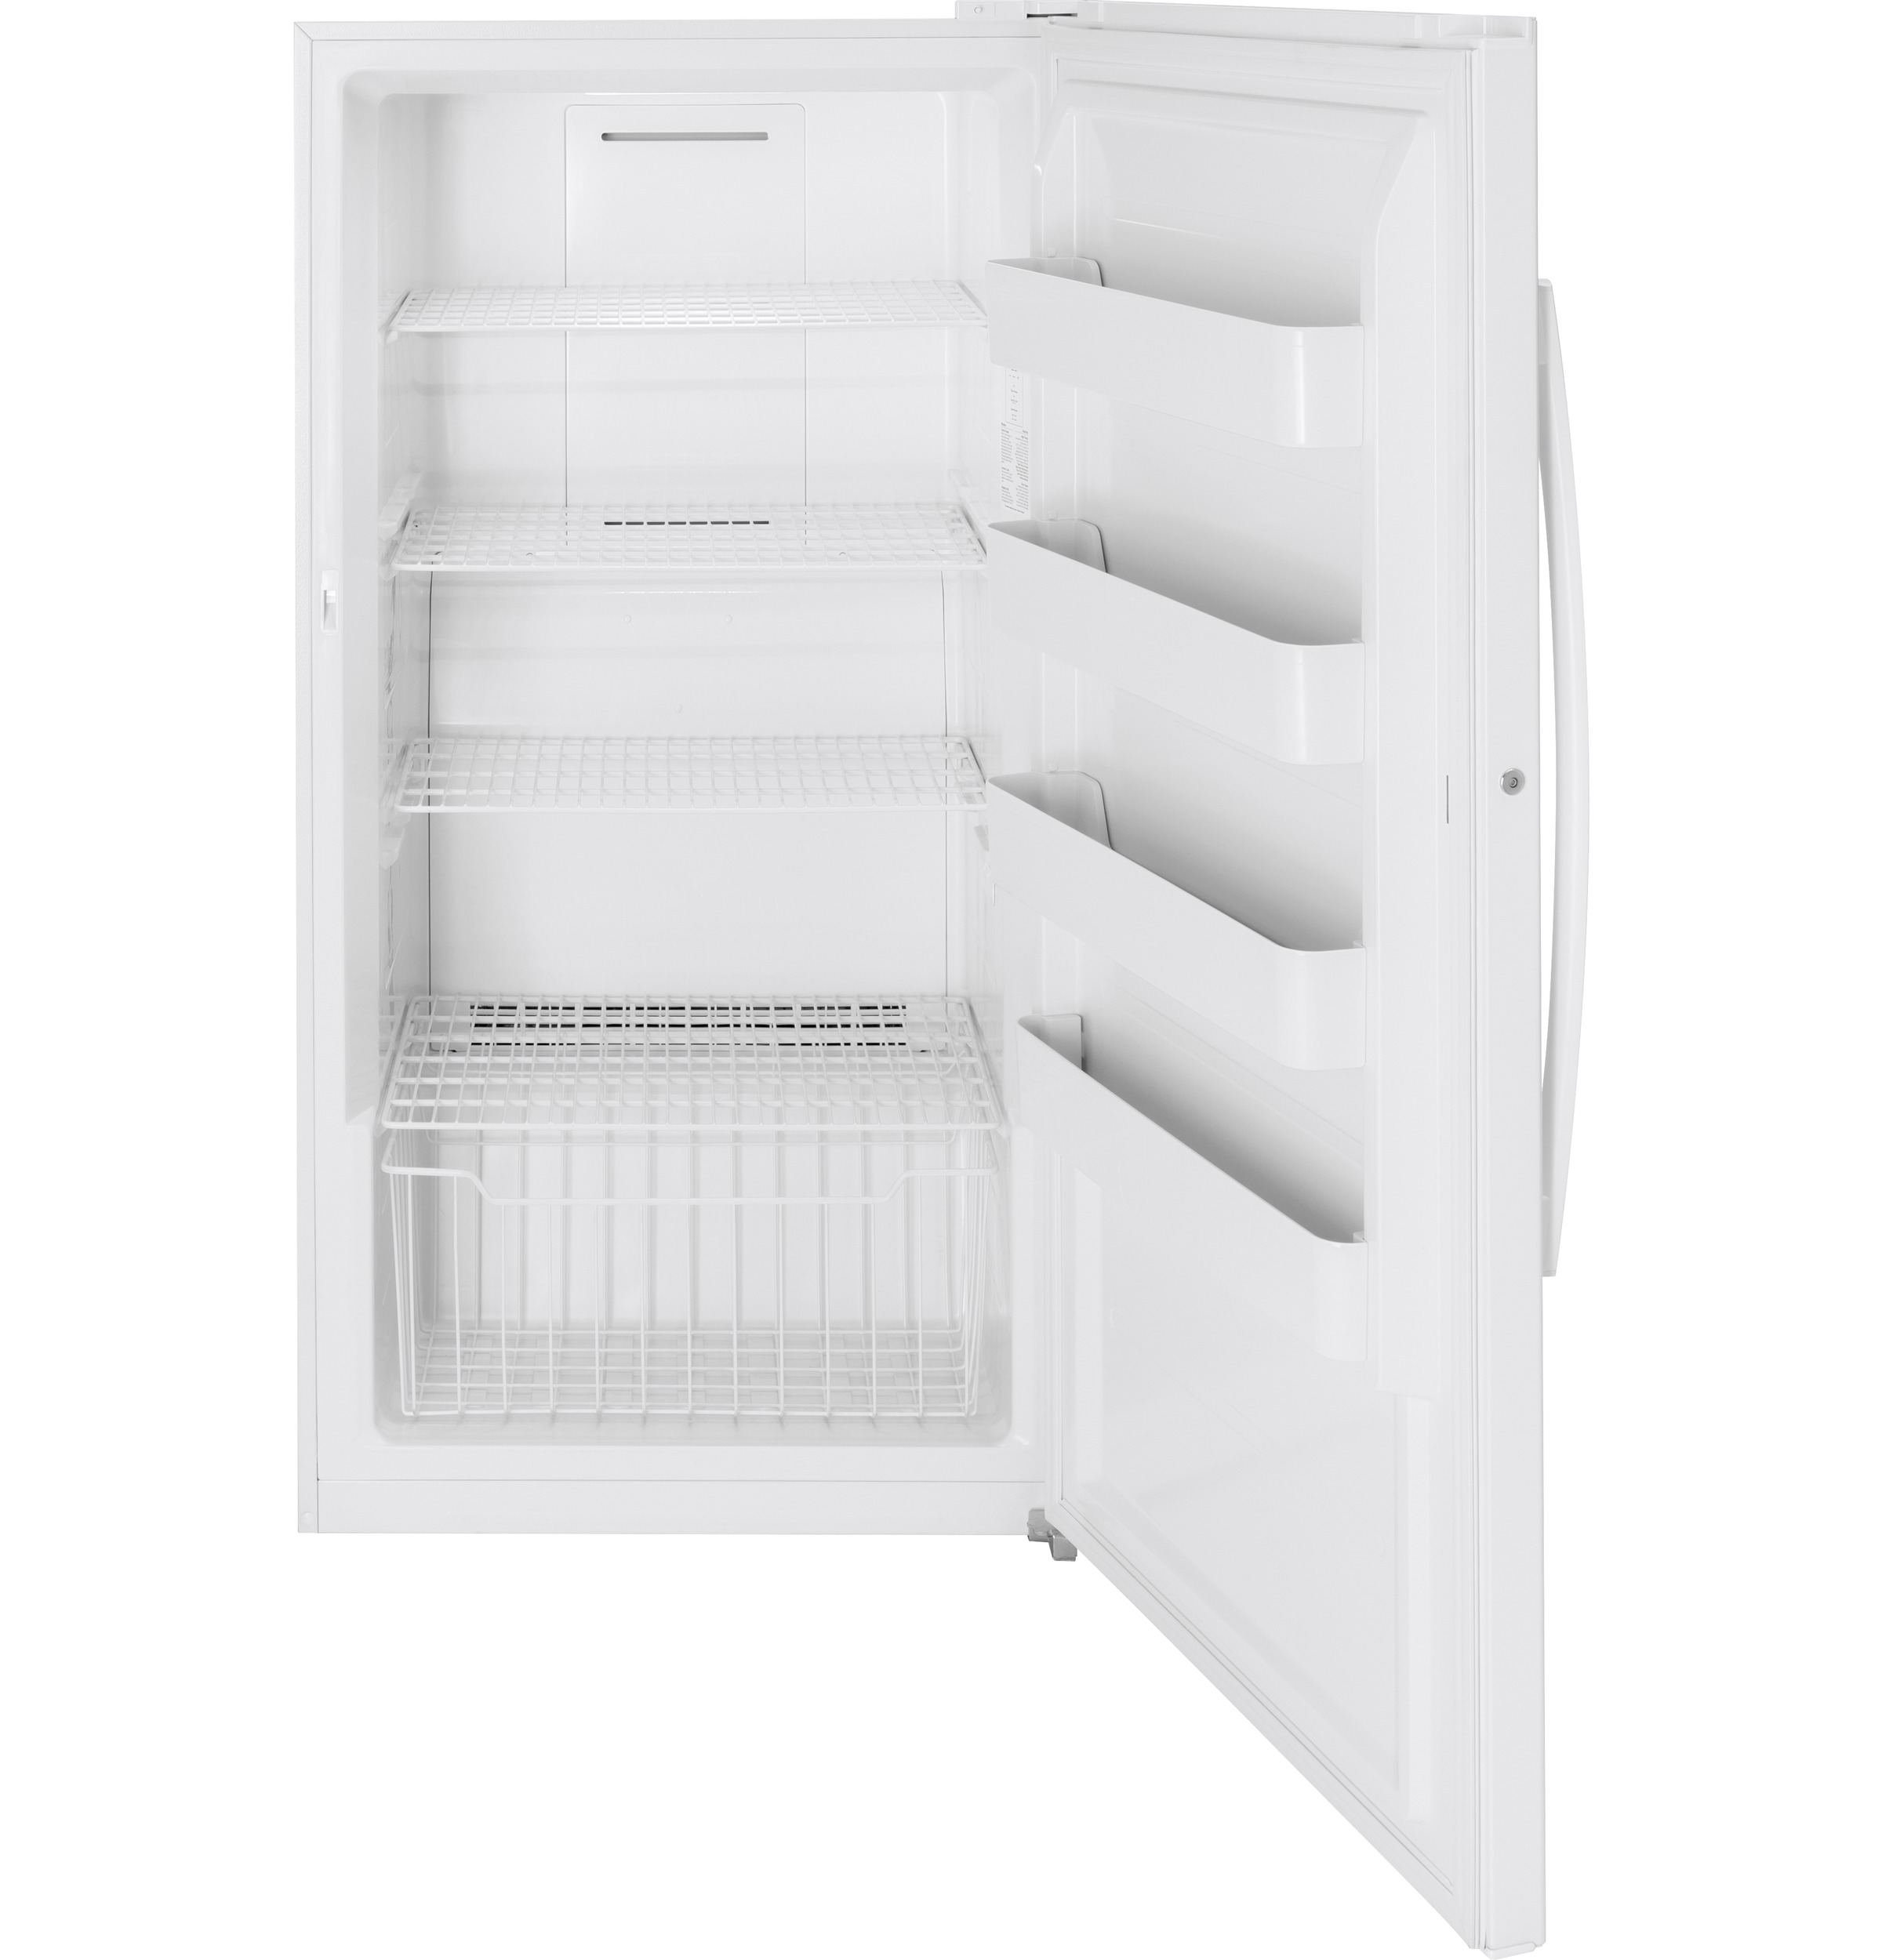 Model: FUF17SMRWW | GE® 17.3 Cu. Ft. Frost-Free Upright Freezer